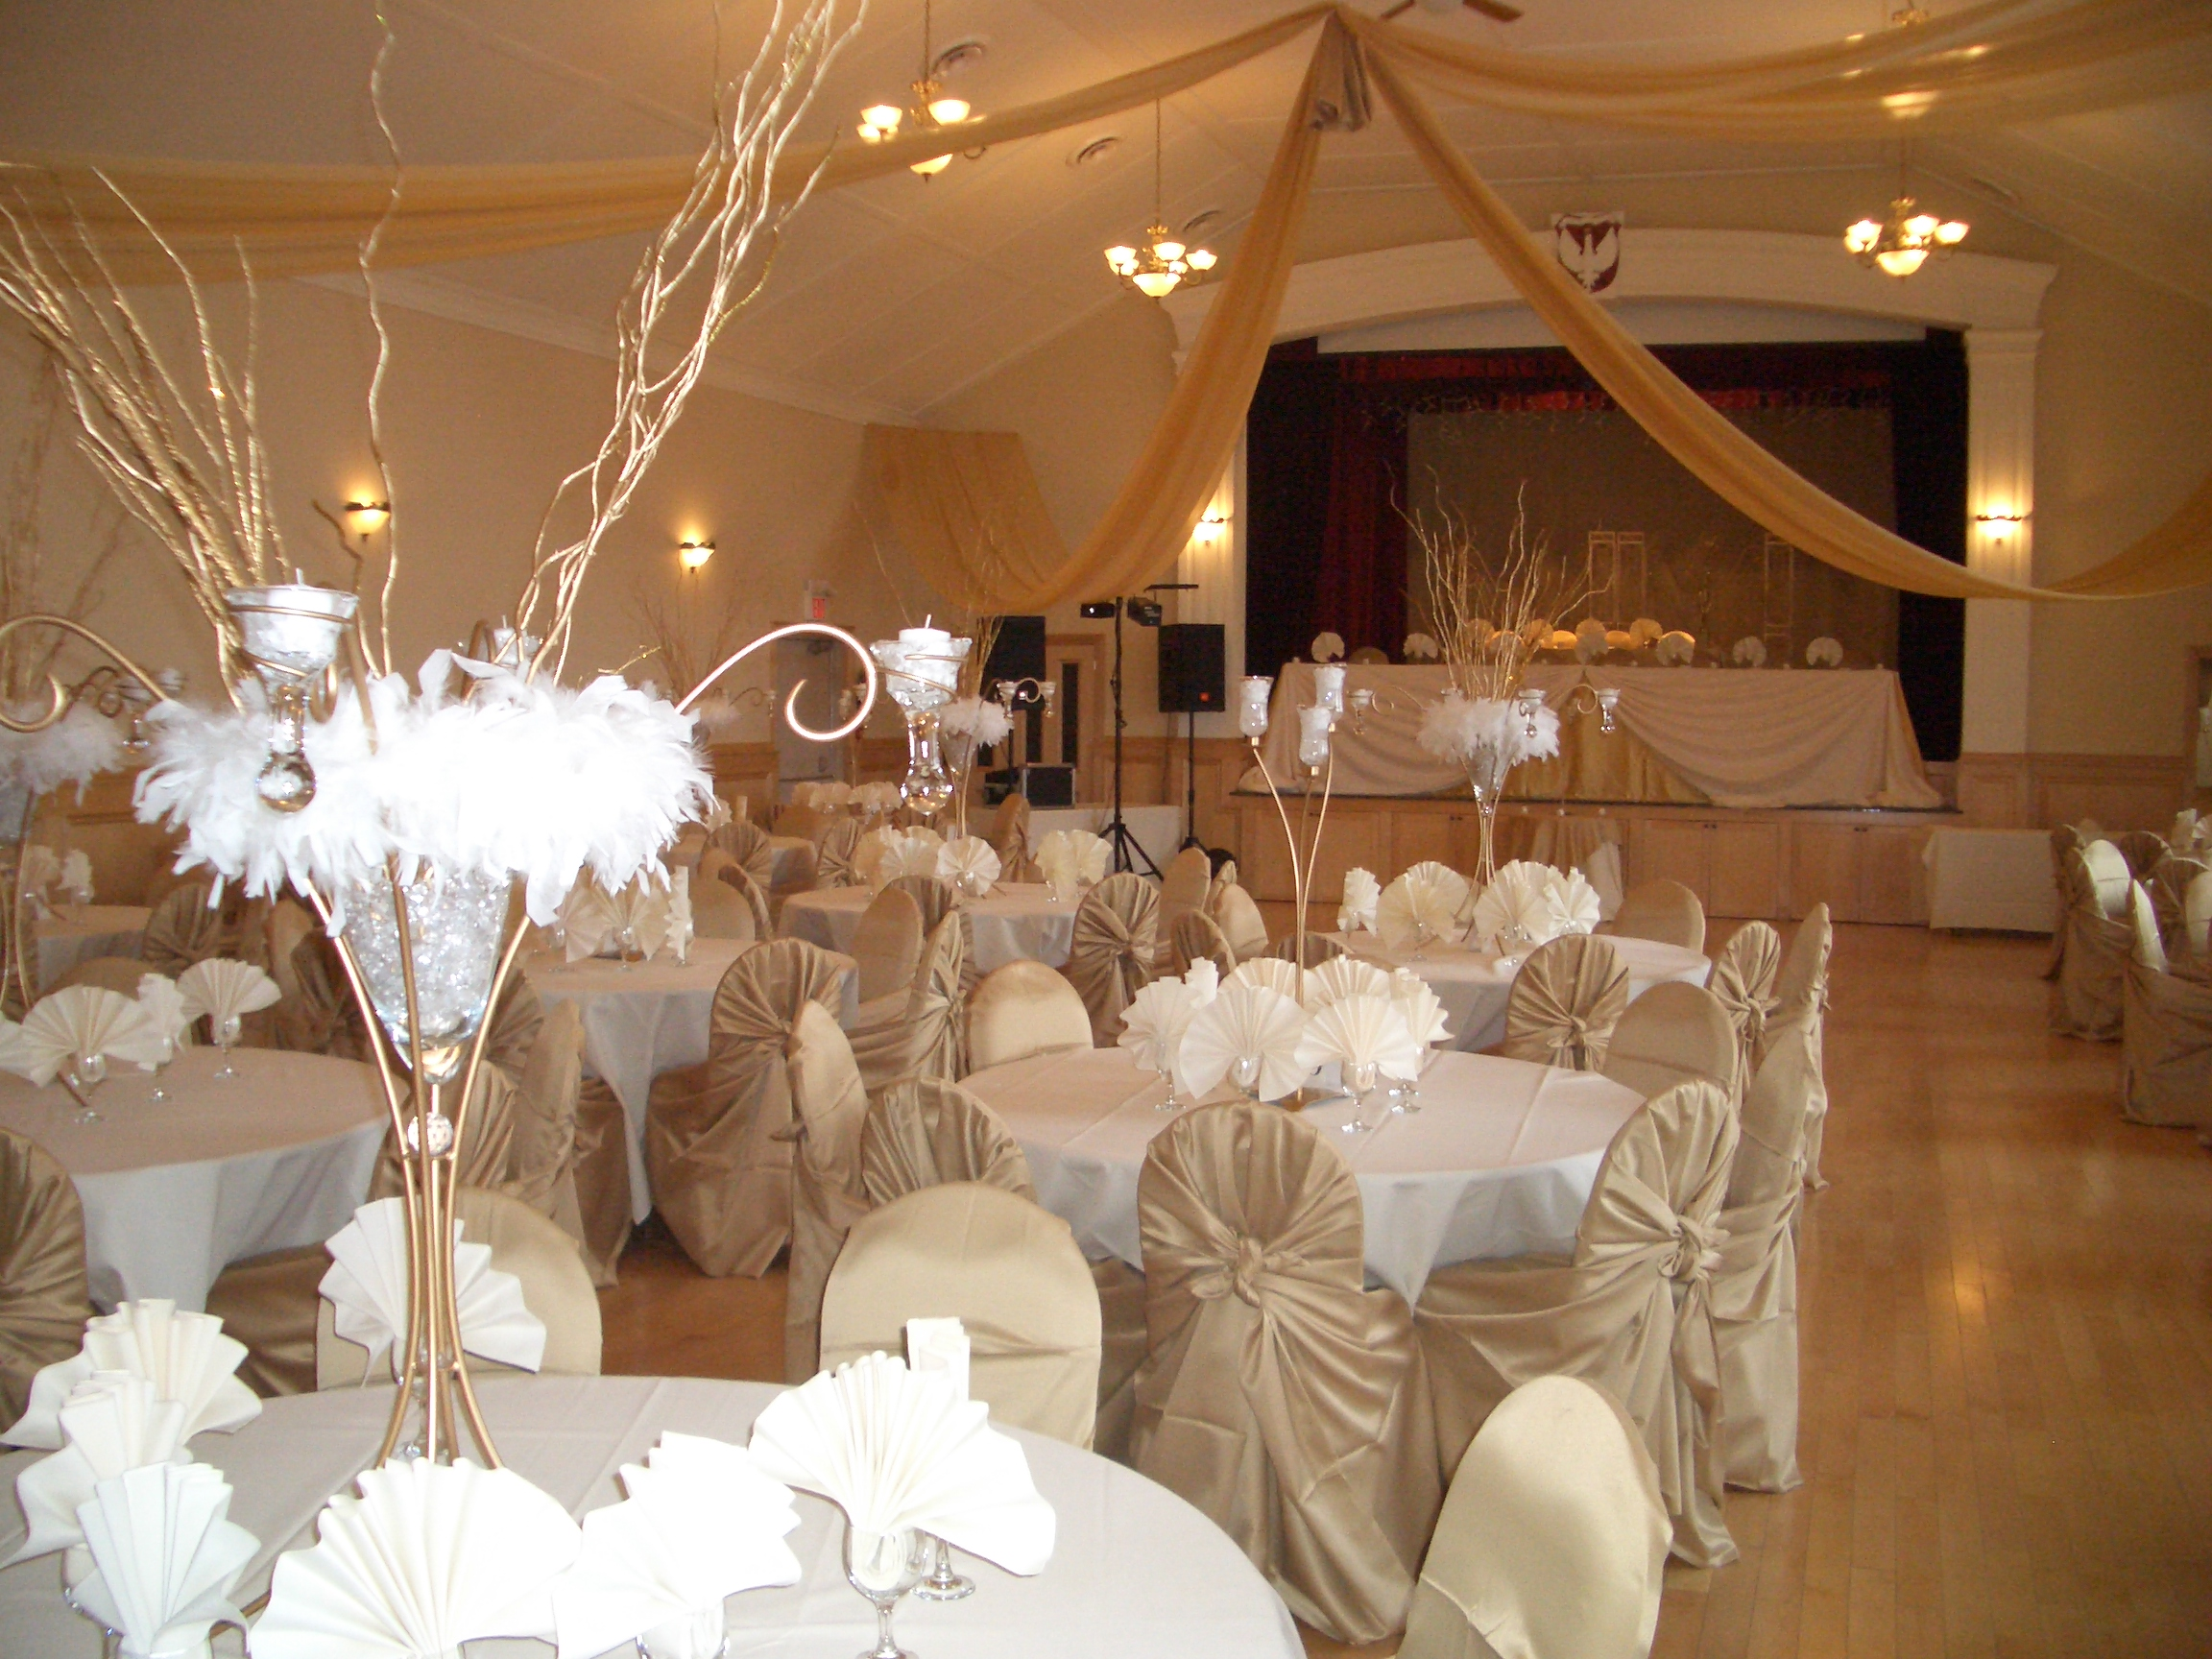 Rent A Wedding Reception Hall : Banquet hall decorated for a wedding reception g